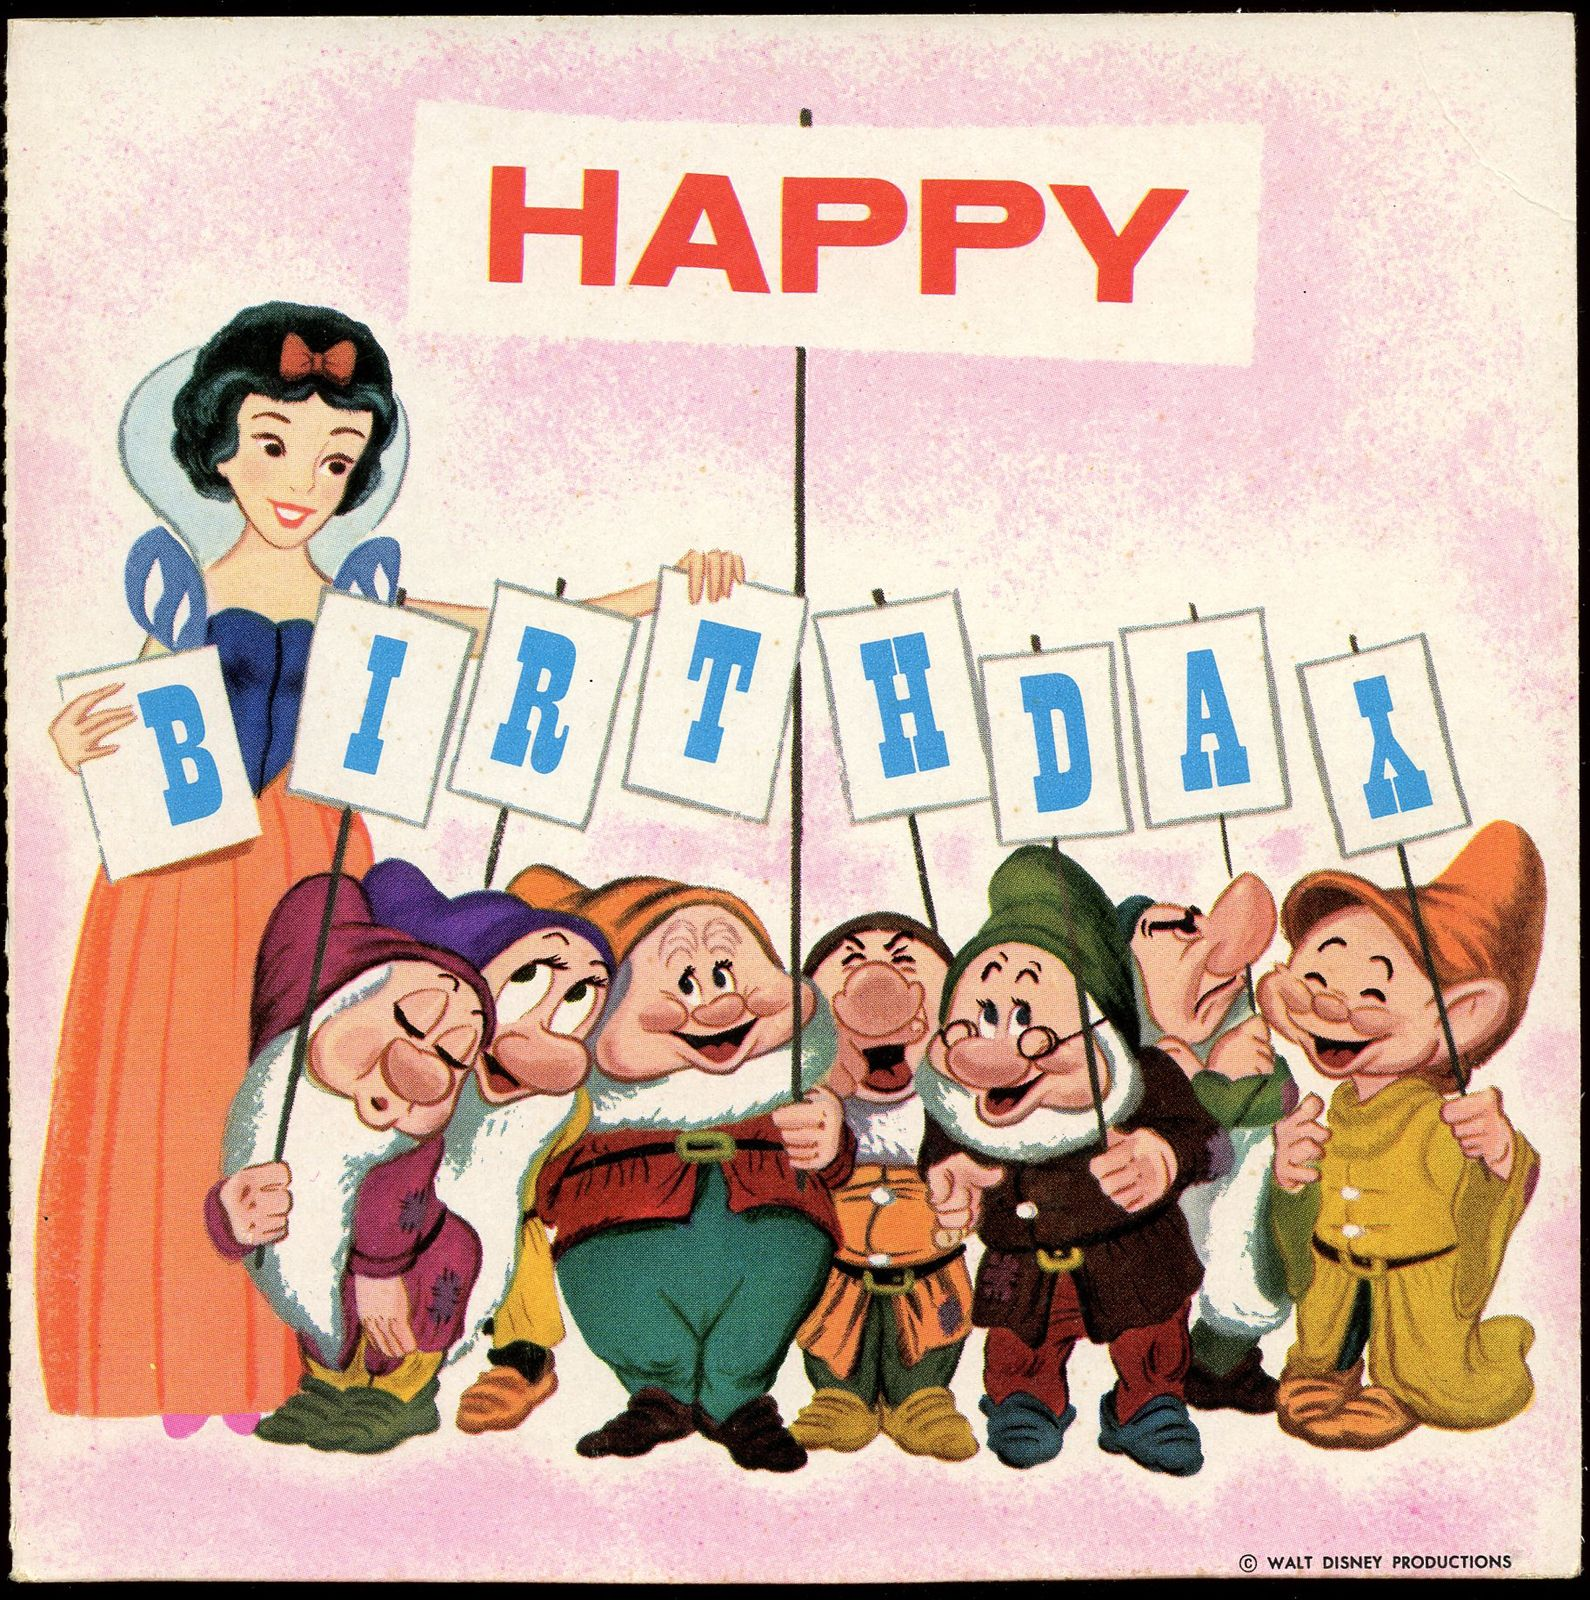 Happy birthday card 1964 disney posters and postcards pinterest happy birthday card 1964 kristyandbryce Choice Image